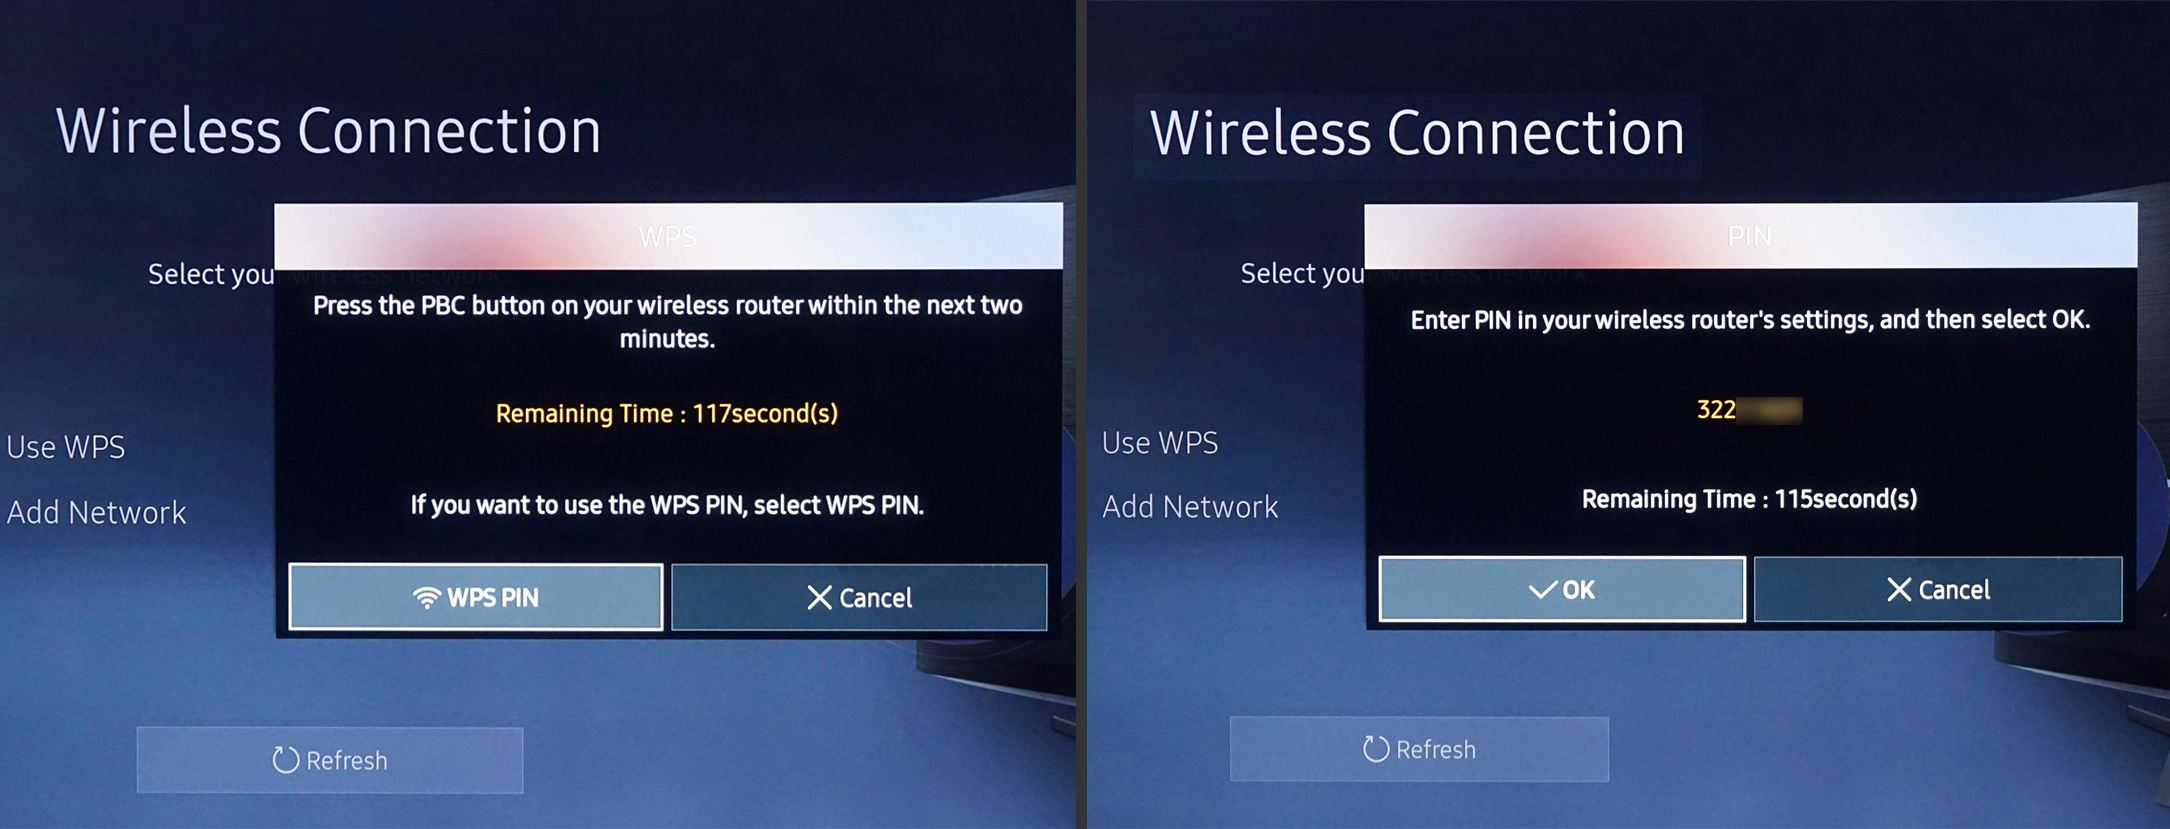 How to Connect a Smart TV to Wi-Fi